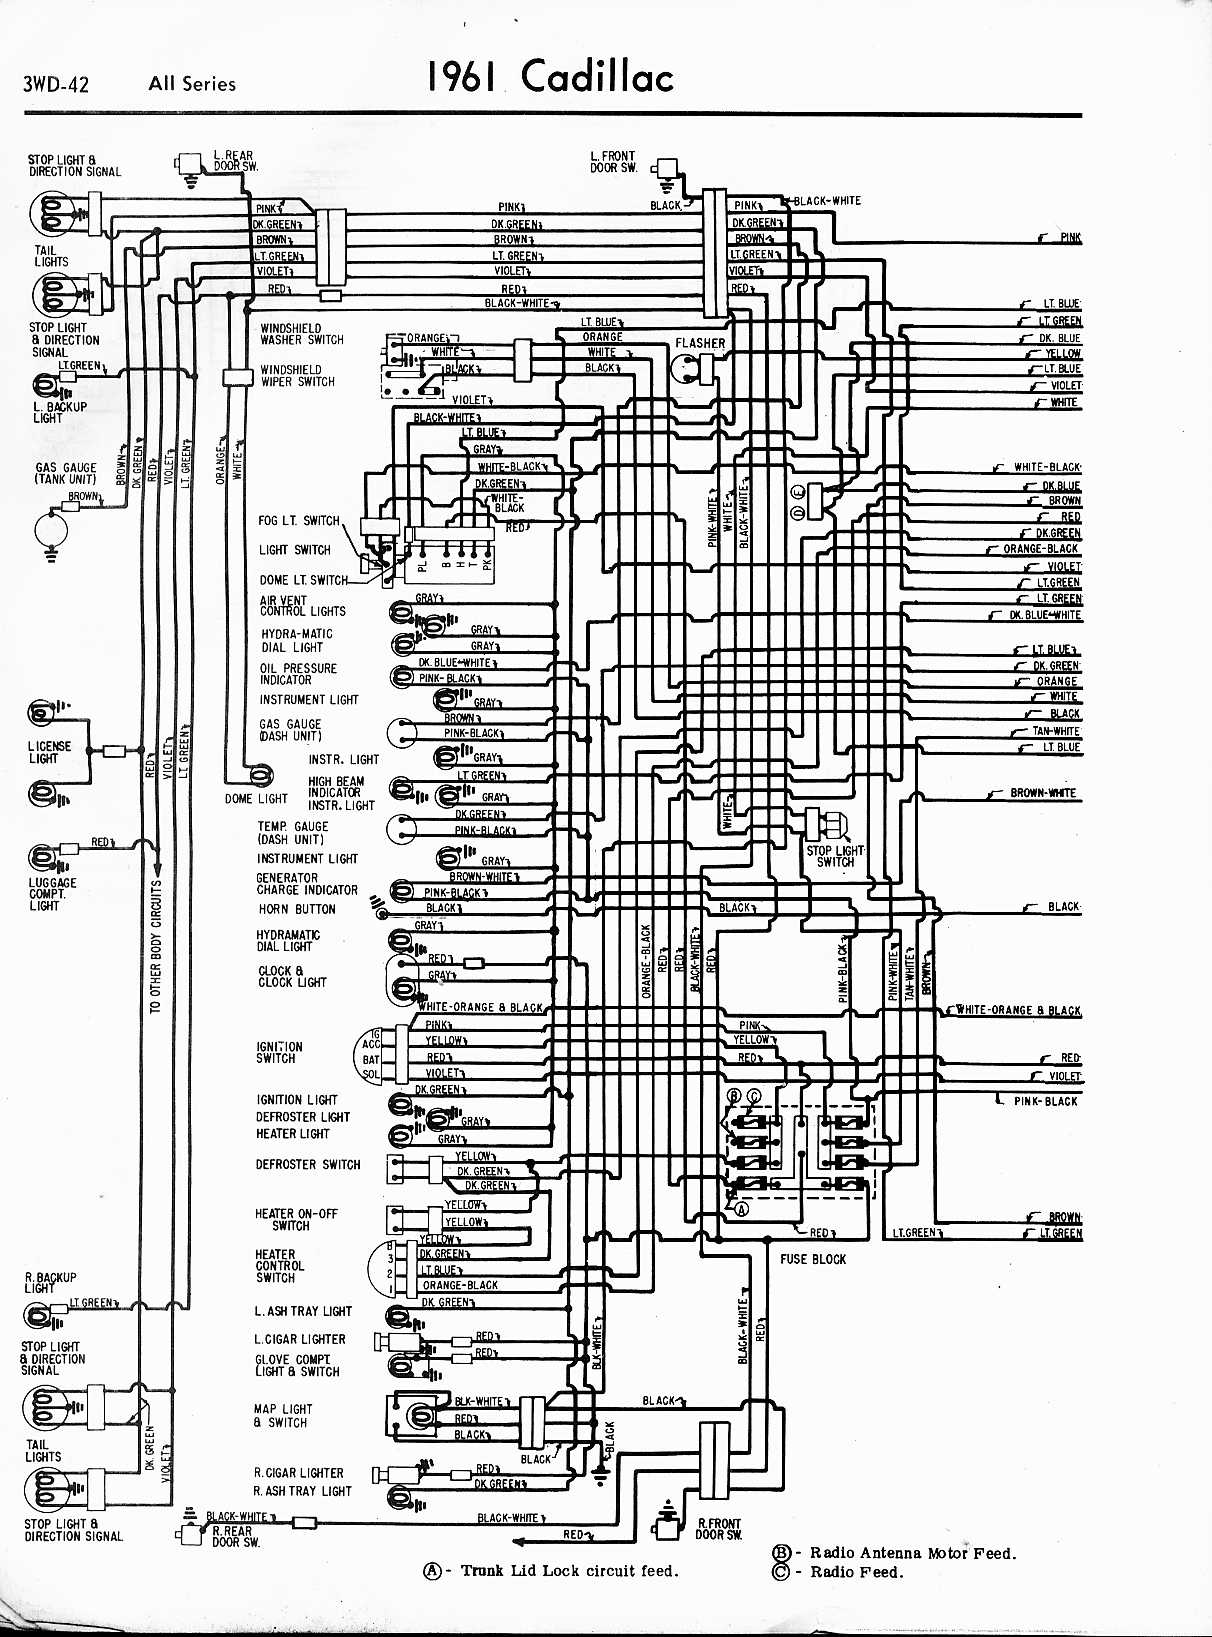 1961 cadillac wiring diagram circuit diagram symbols u2022 rh armkandy co 1961 cadillac fleetwood wiring diagram 1961 cadillac deville wiring diagram